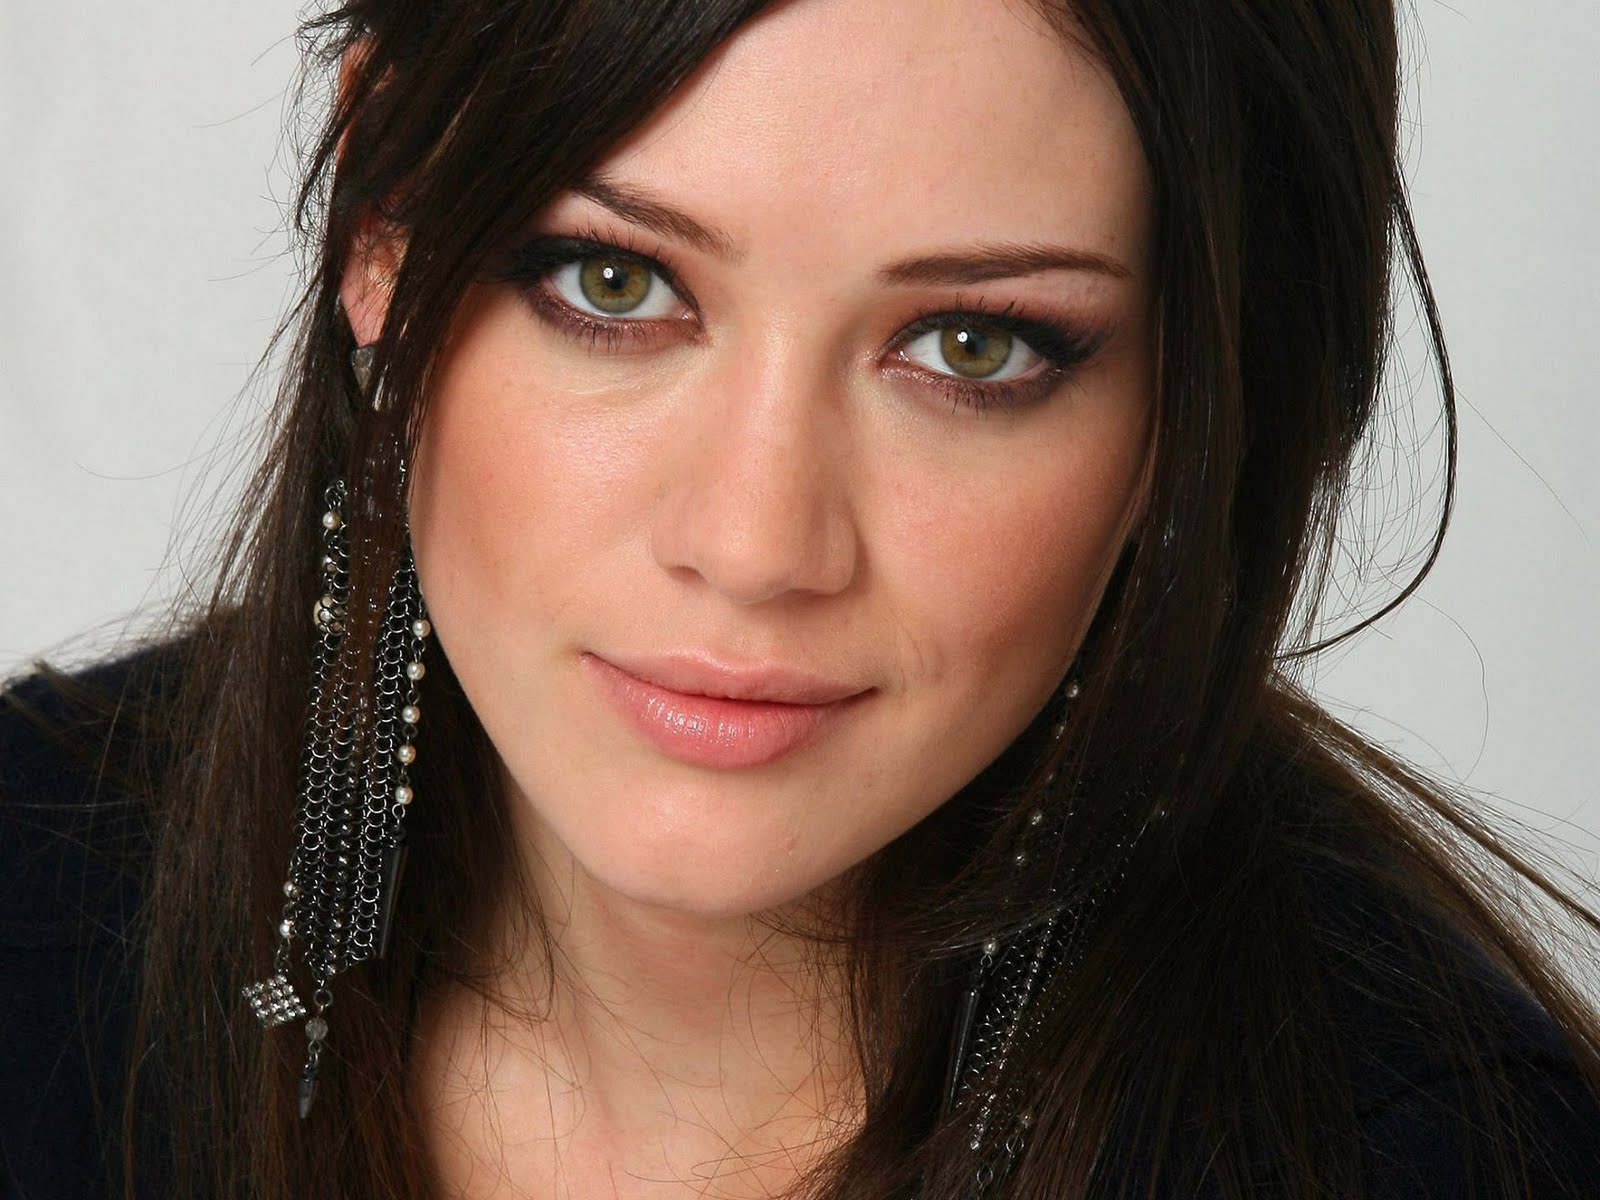 Hollywood Celebrities: Hilary Duff Wallpapers Gallery Hilary Duff